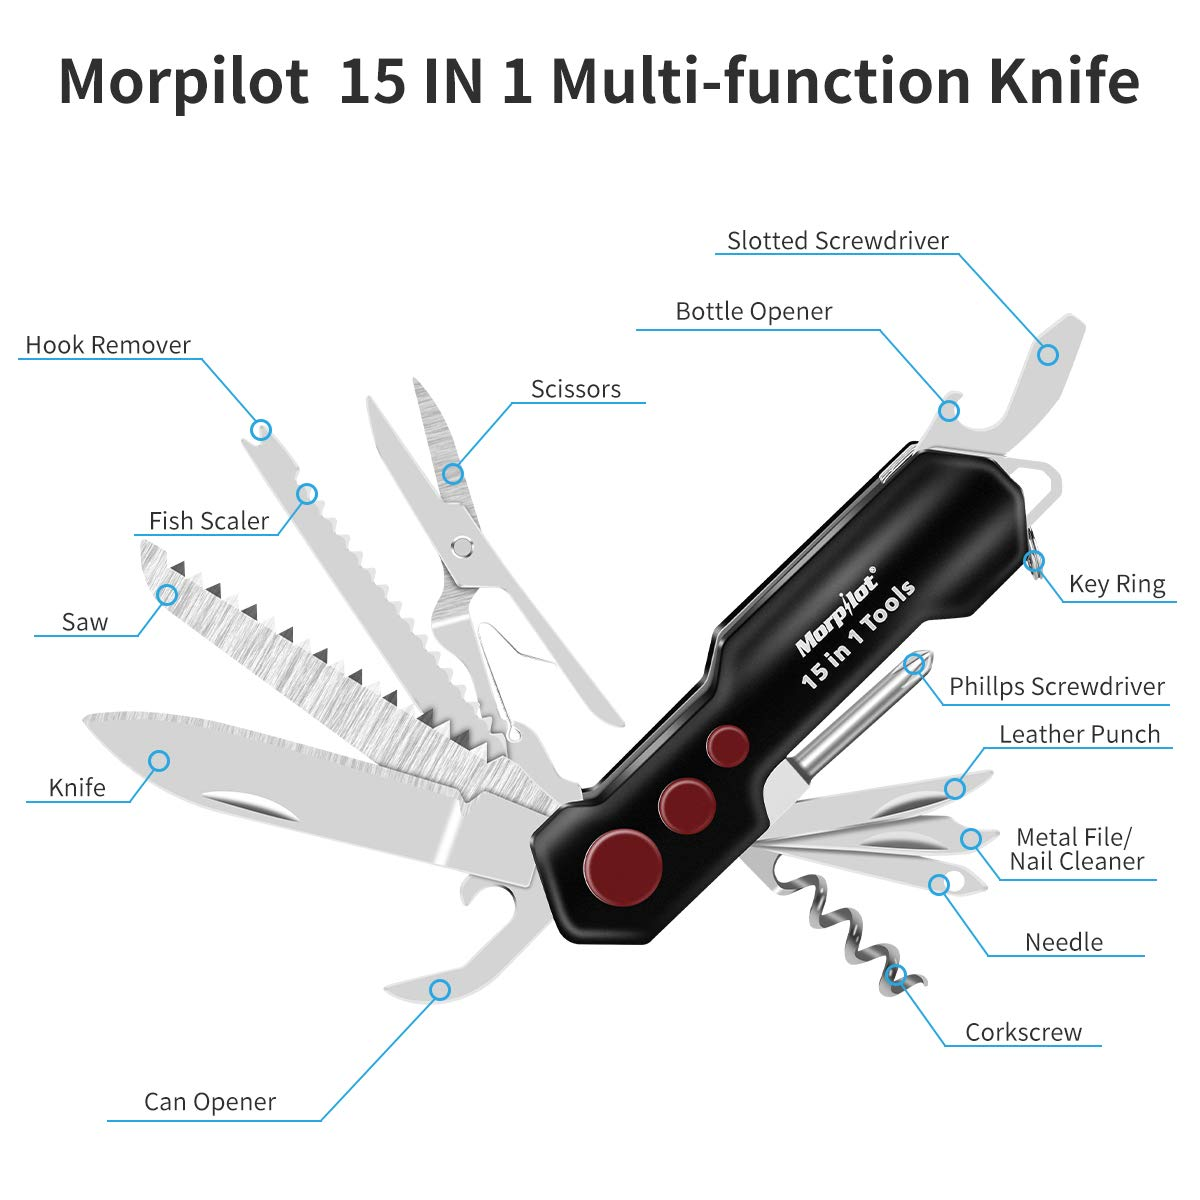 Knife and Flashlight Set, Morpilot, Multifunctional Knife 15 IN 1, LED Flashlight with 5 Modes 400LM, IPX4 Waterproof, Pocket Knife and Flashlight Set for Camping and March.